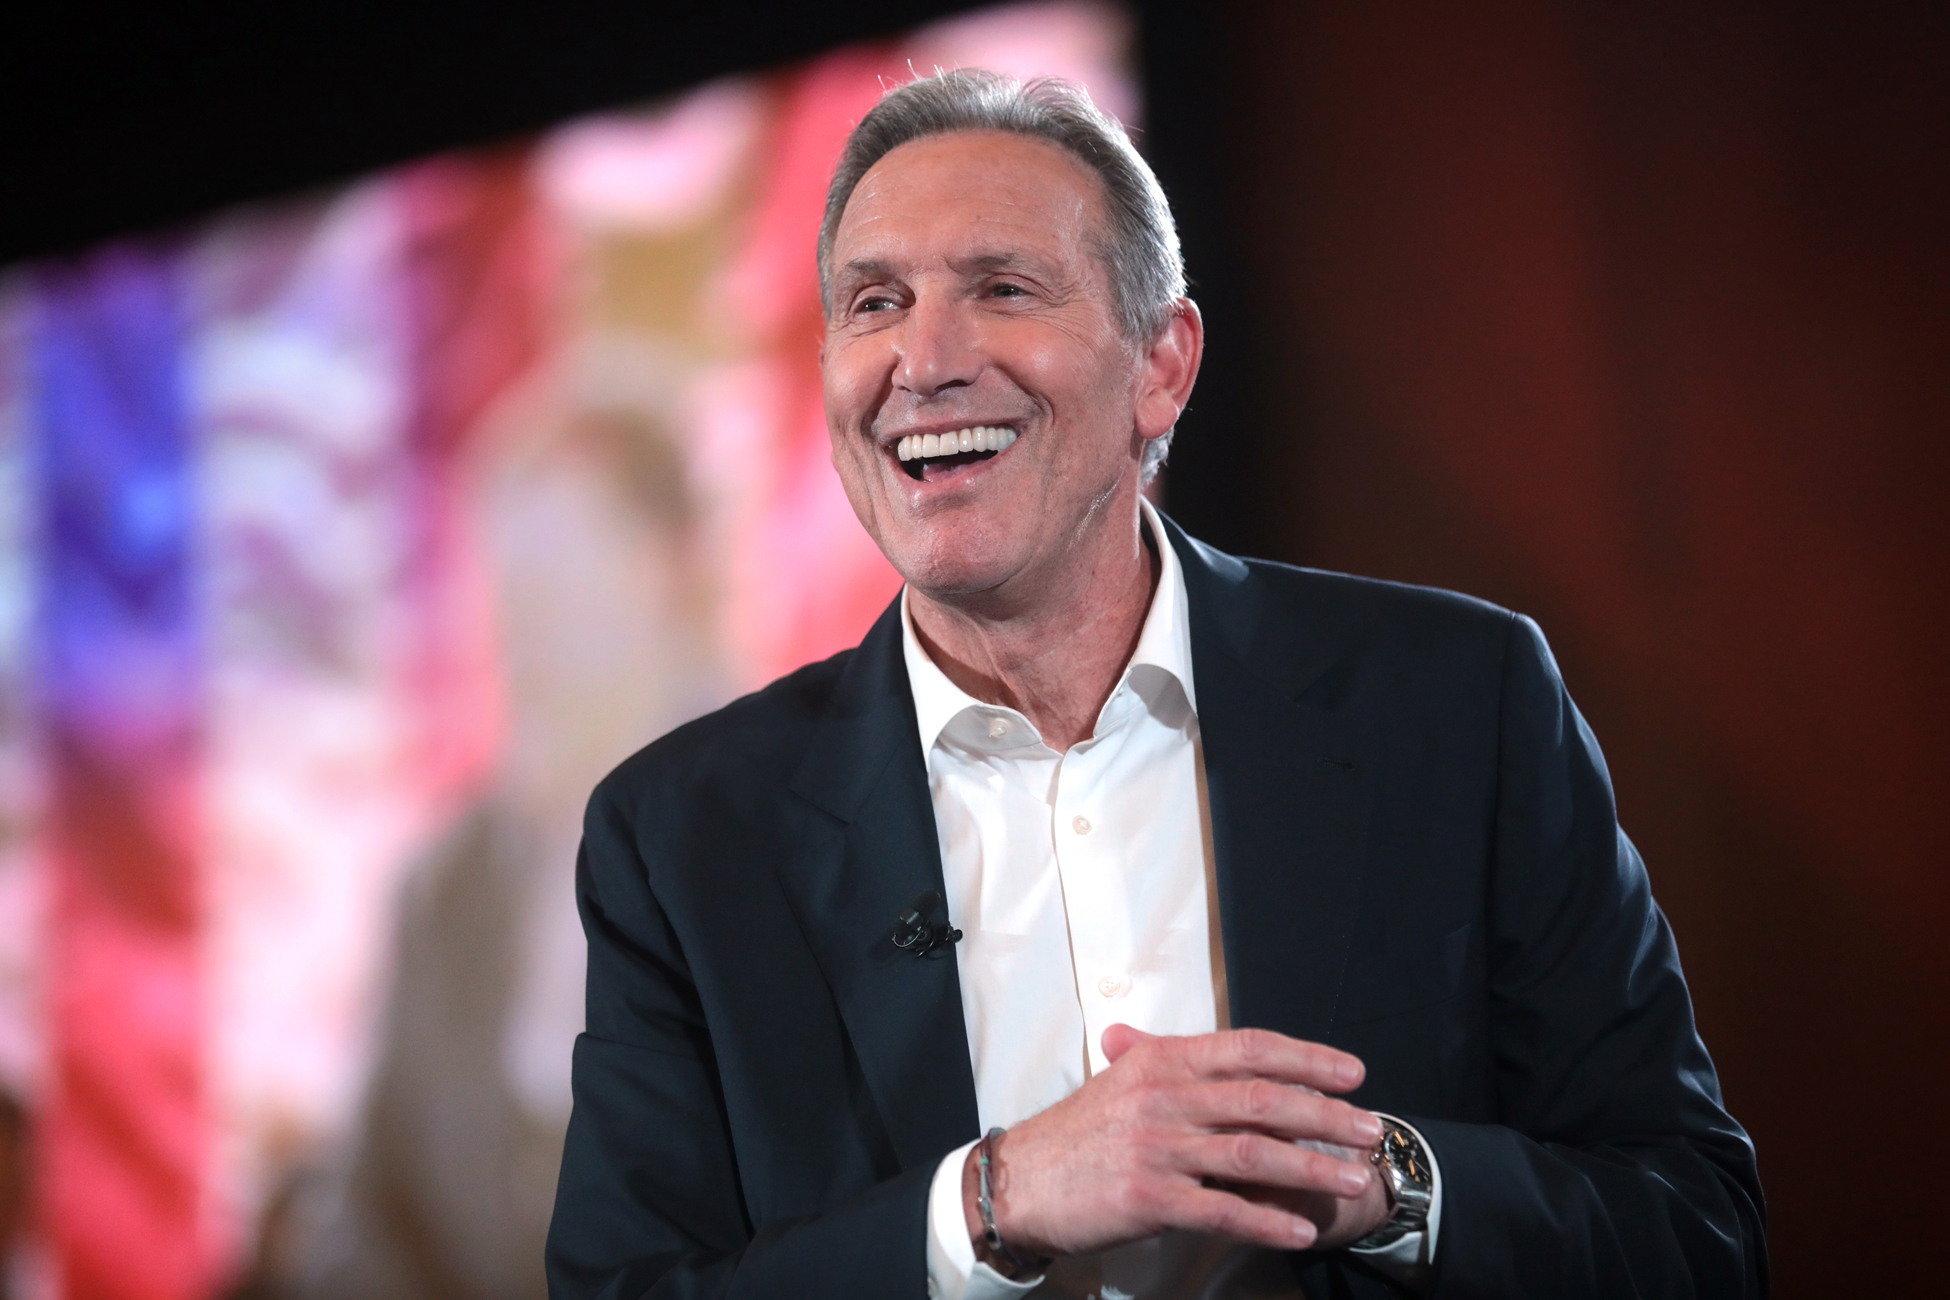 Howard Schultz believes in great employee benefits